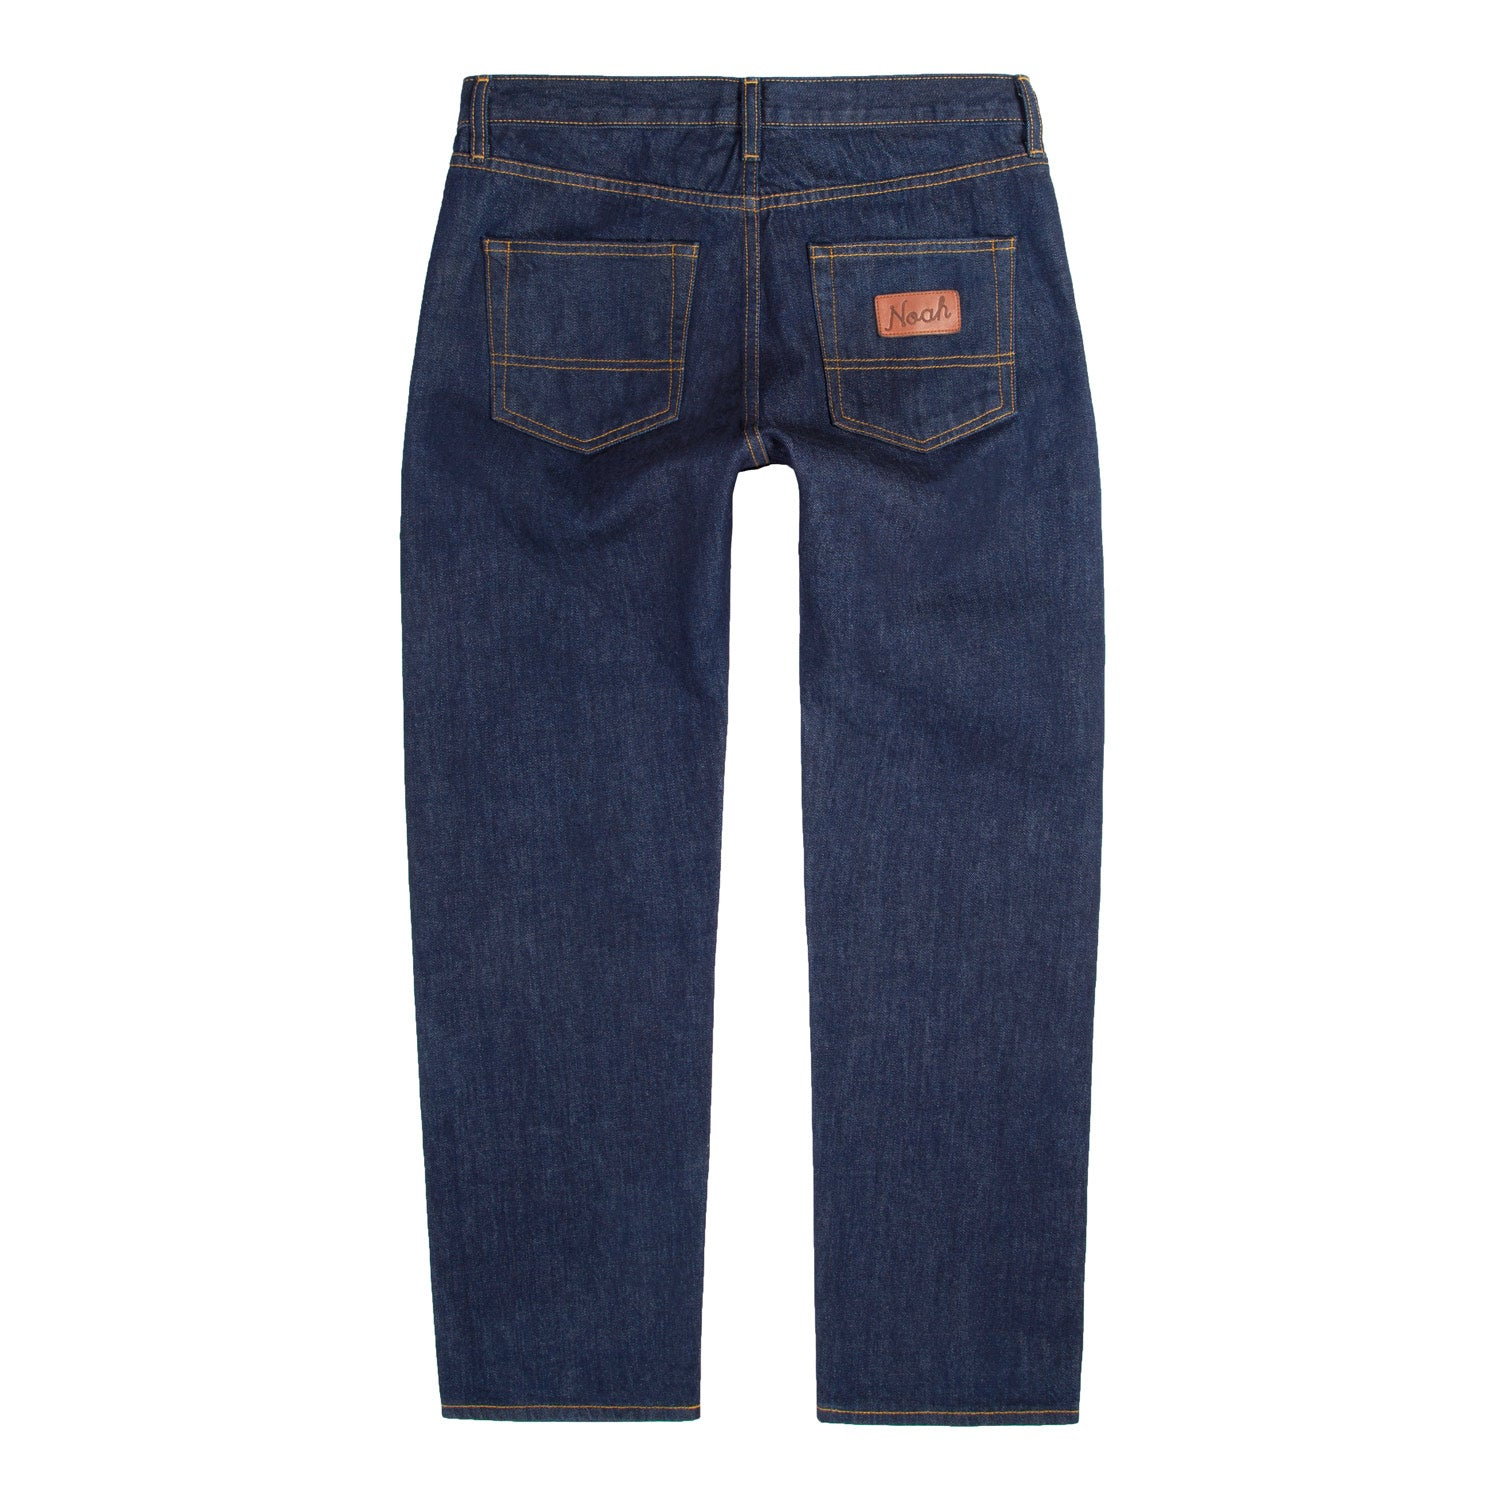 5-Pocket Denim